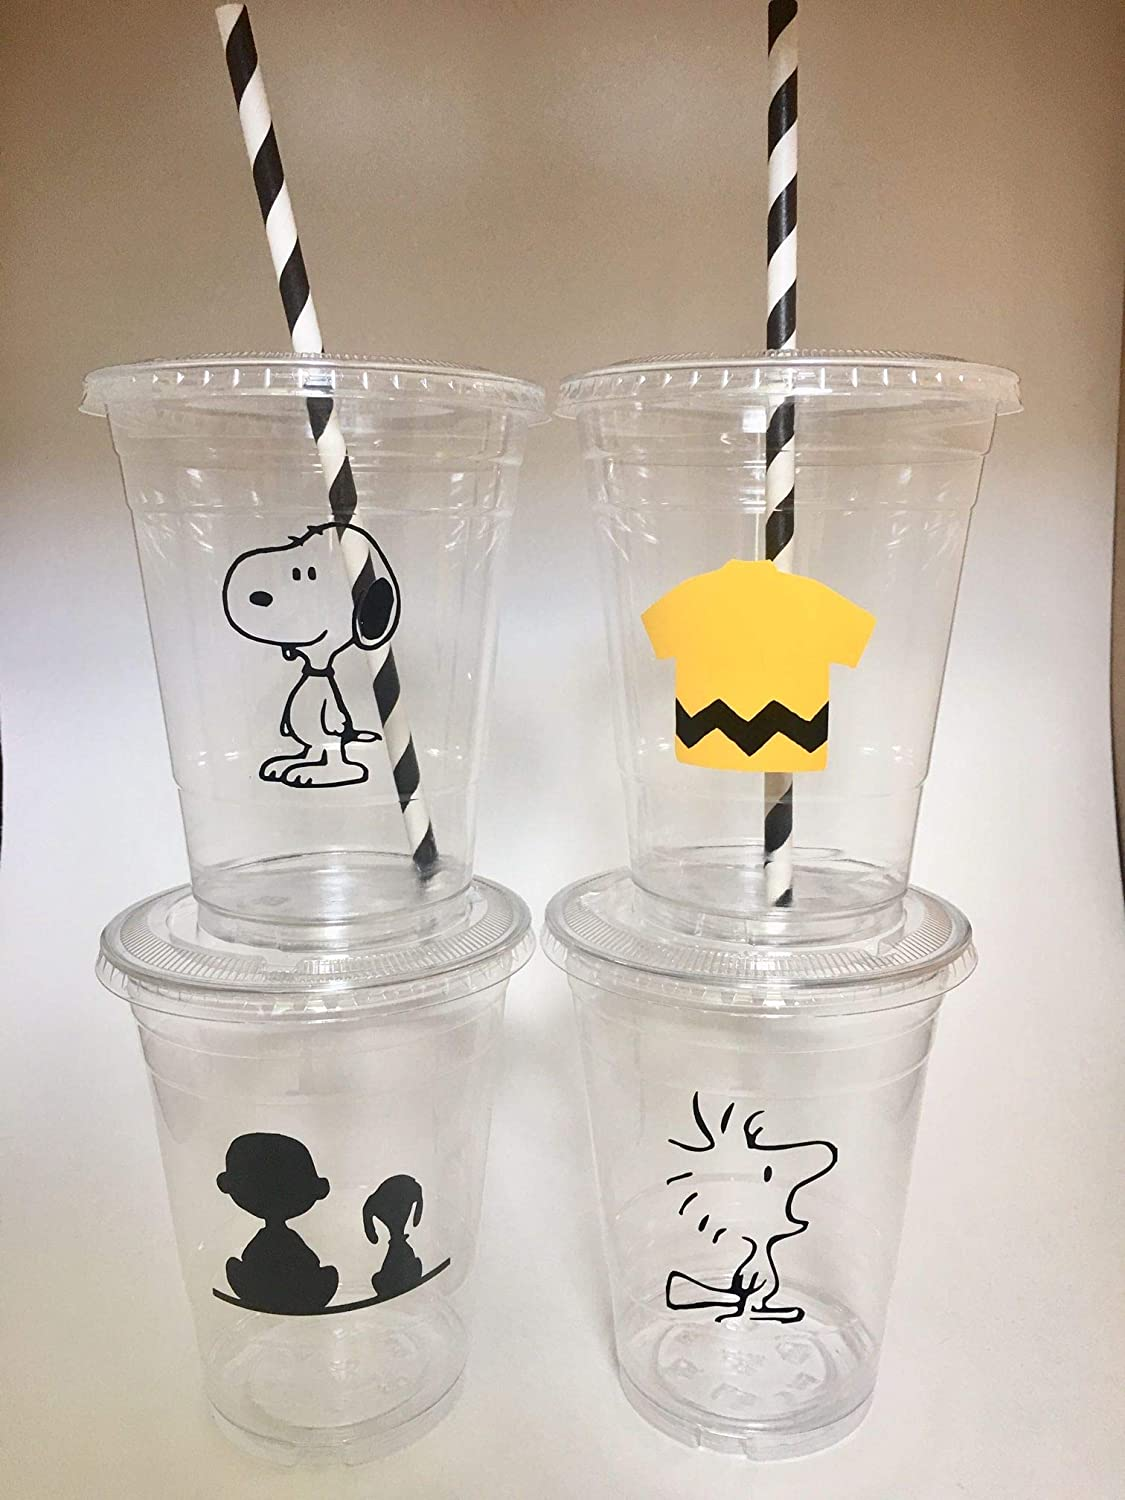 Snoopy Party Cups Disposable Set of 12 With Lids straws